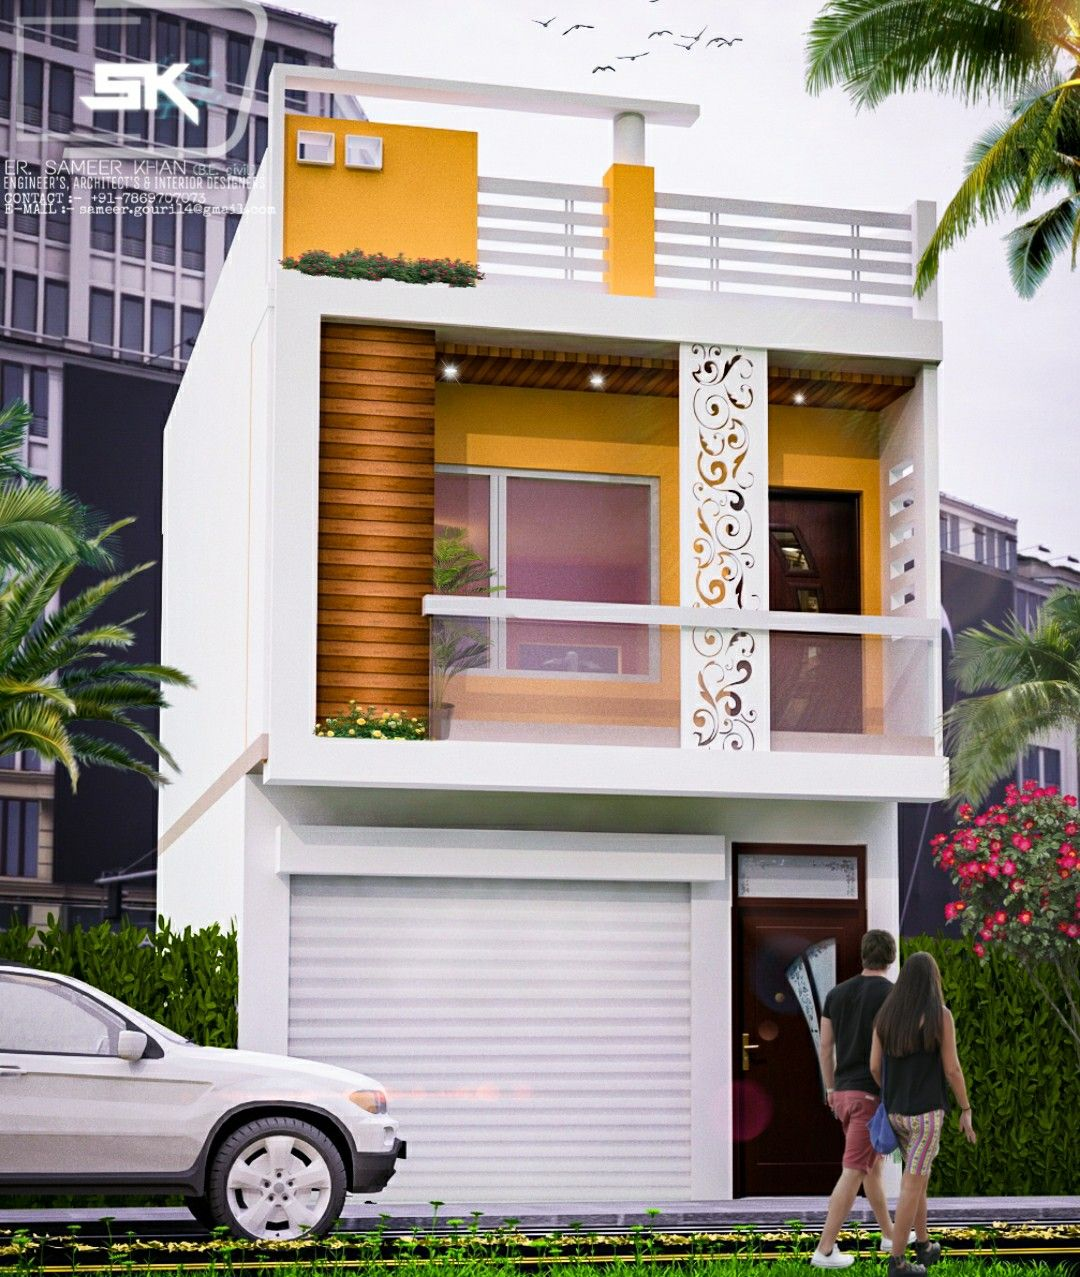 Home Design Ideas India: Introducing Modern House Exterior Elevation Of G+1 Indian